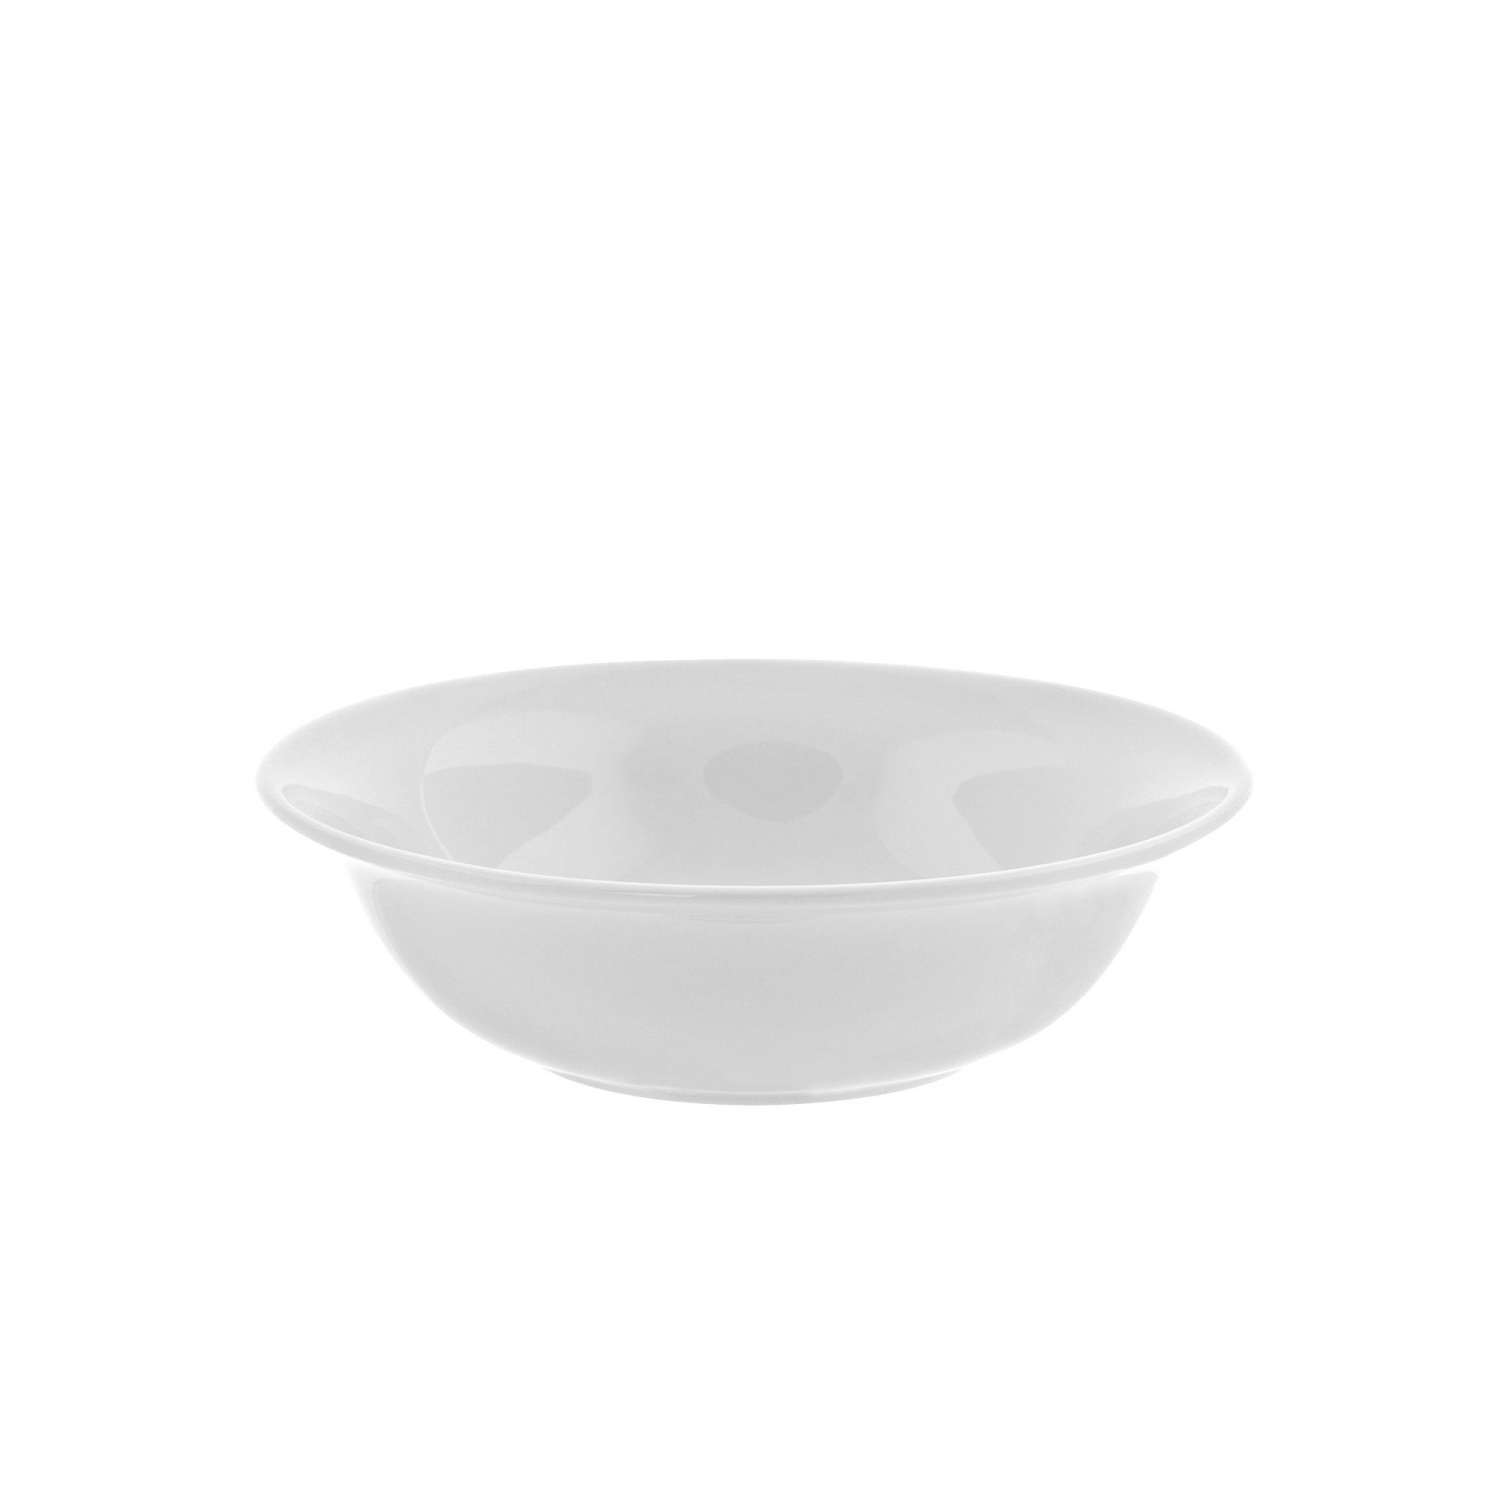 10 Strawberry Street RW0007 Royal White Cereal Bowl 24 oz.